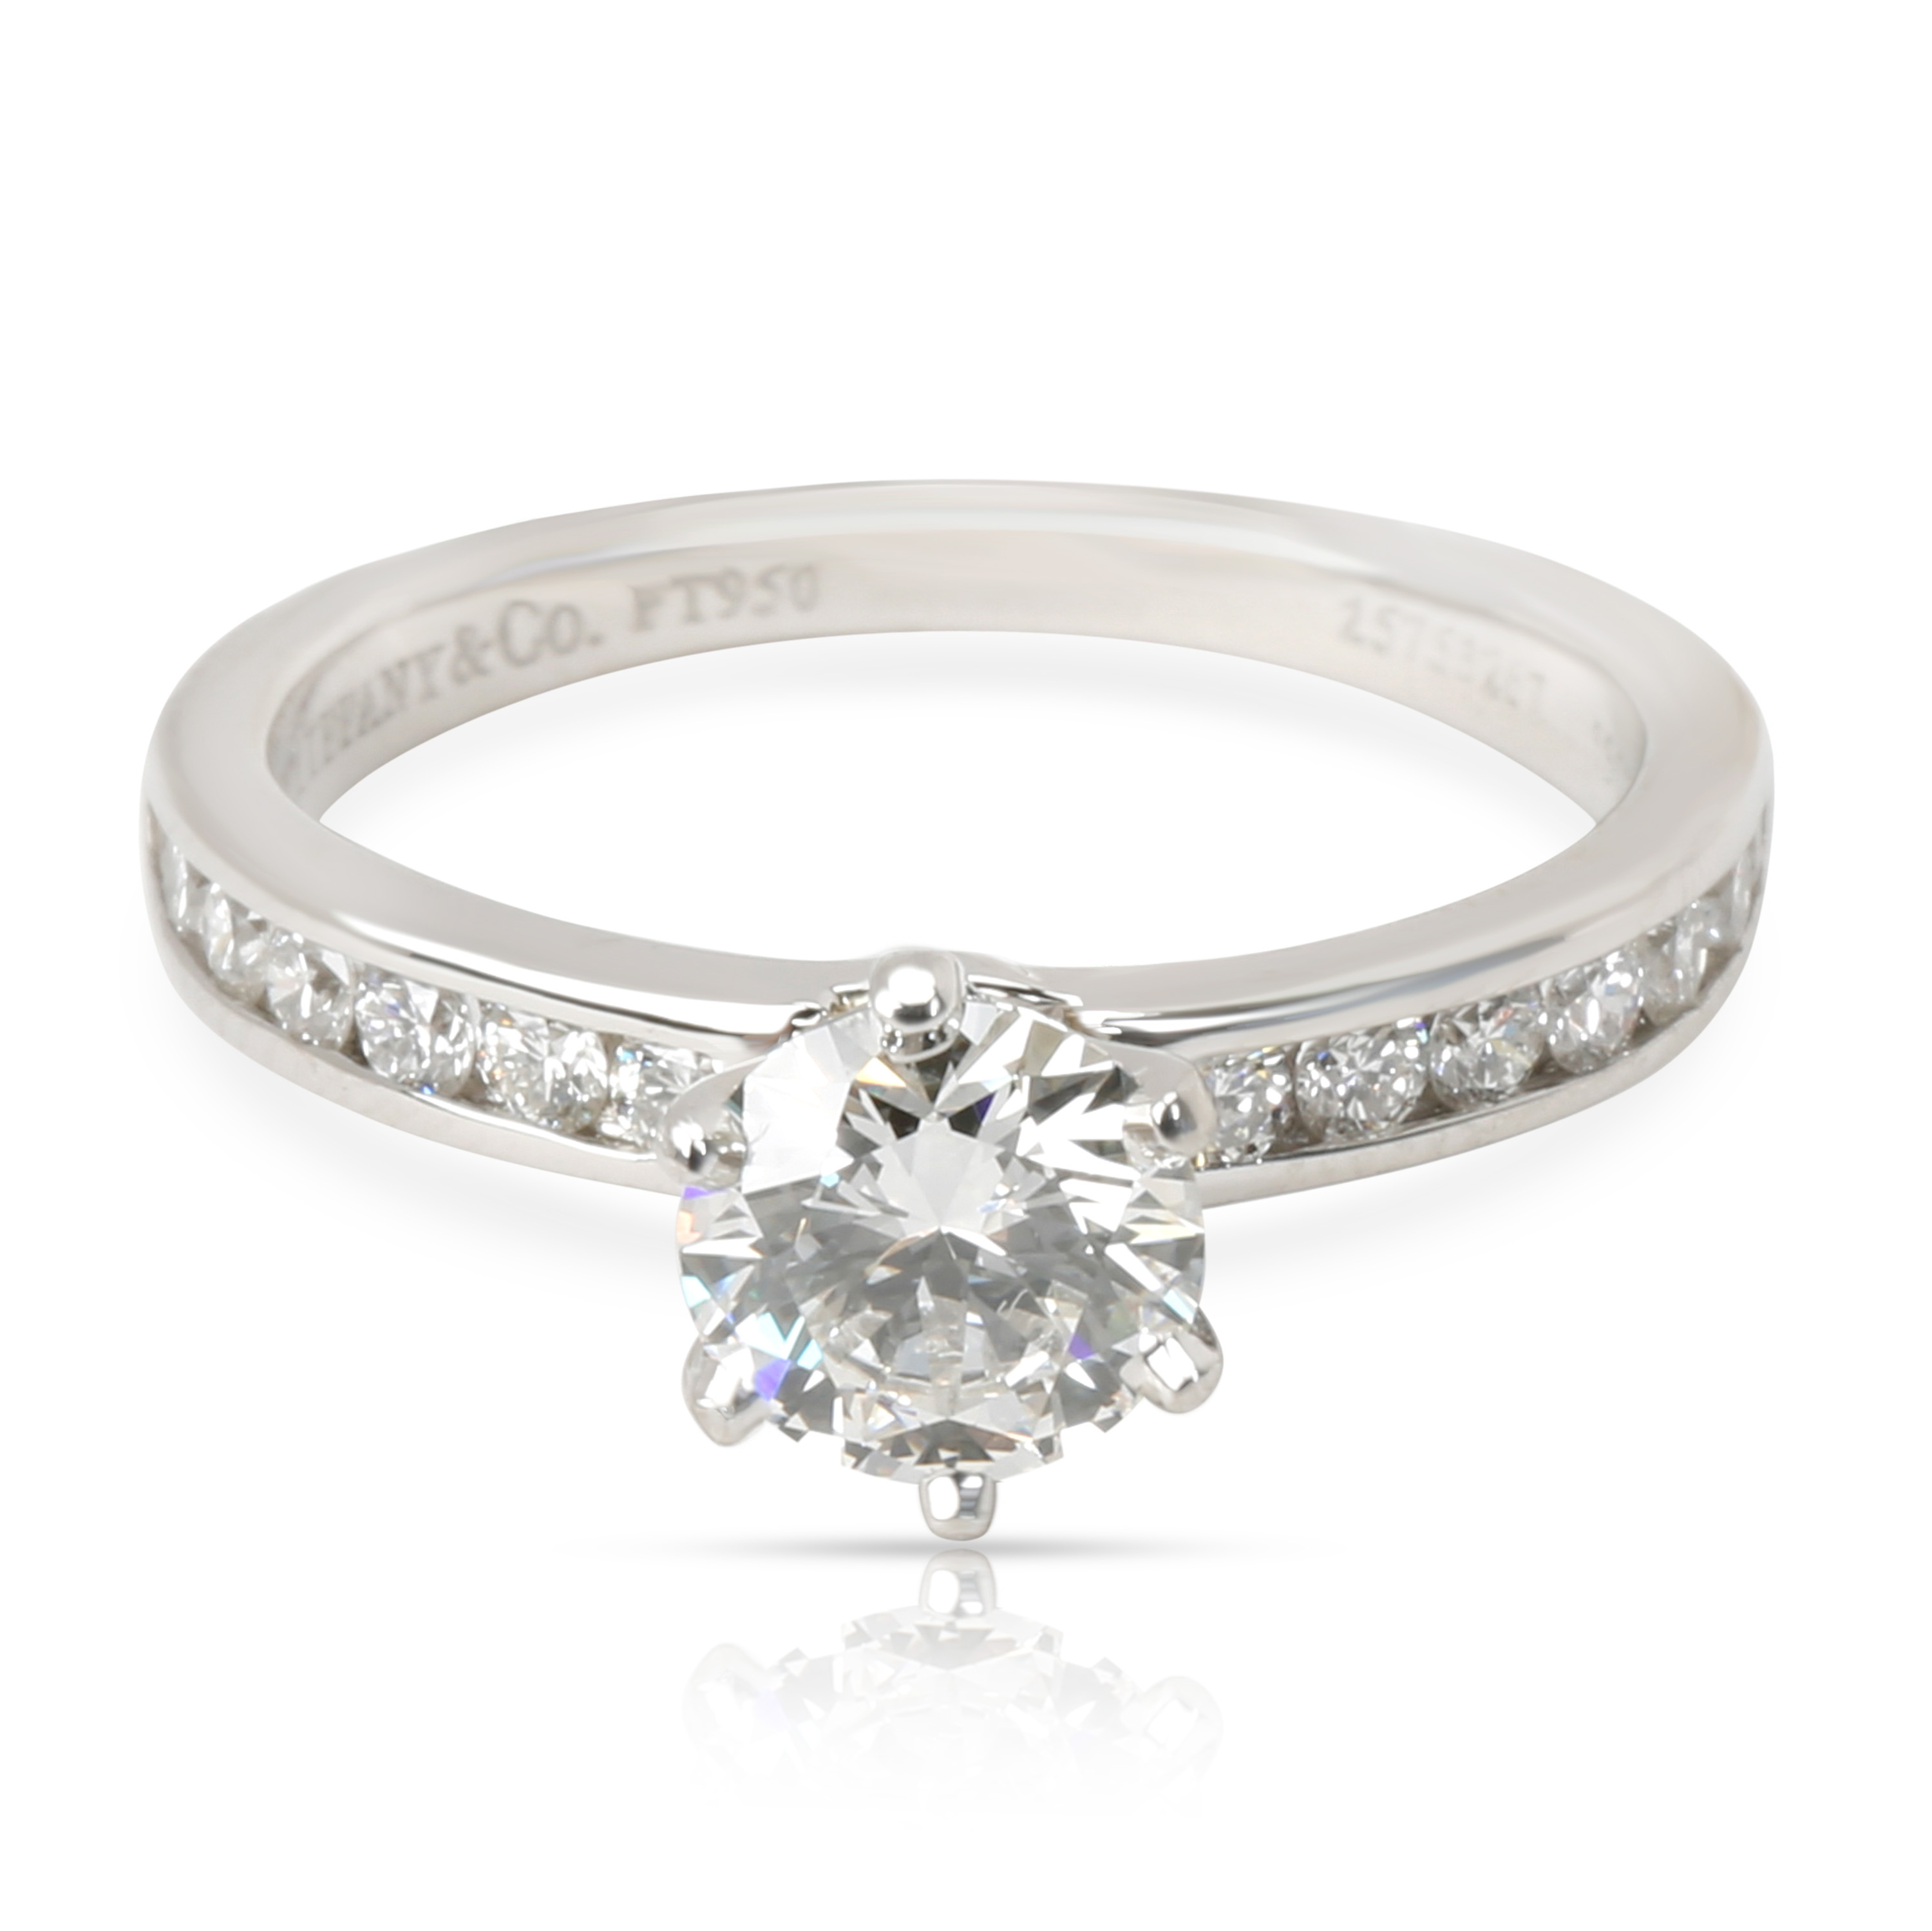 Tiffany & Co. Channel Diamond Engagement Ring in Platinum F VVS2 0.78 CTW